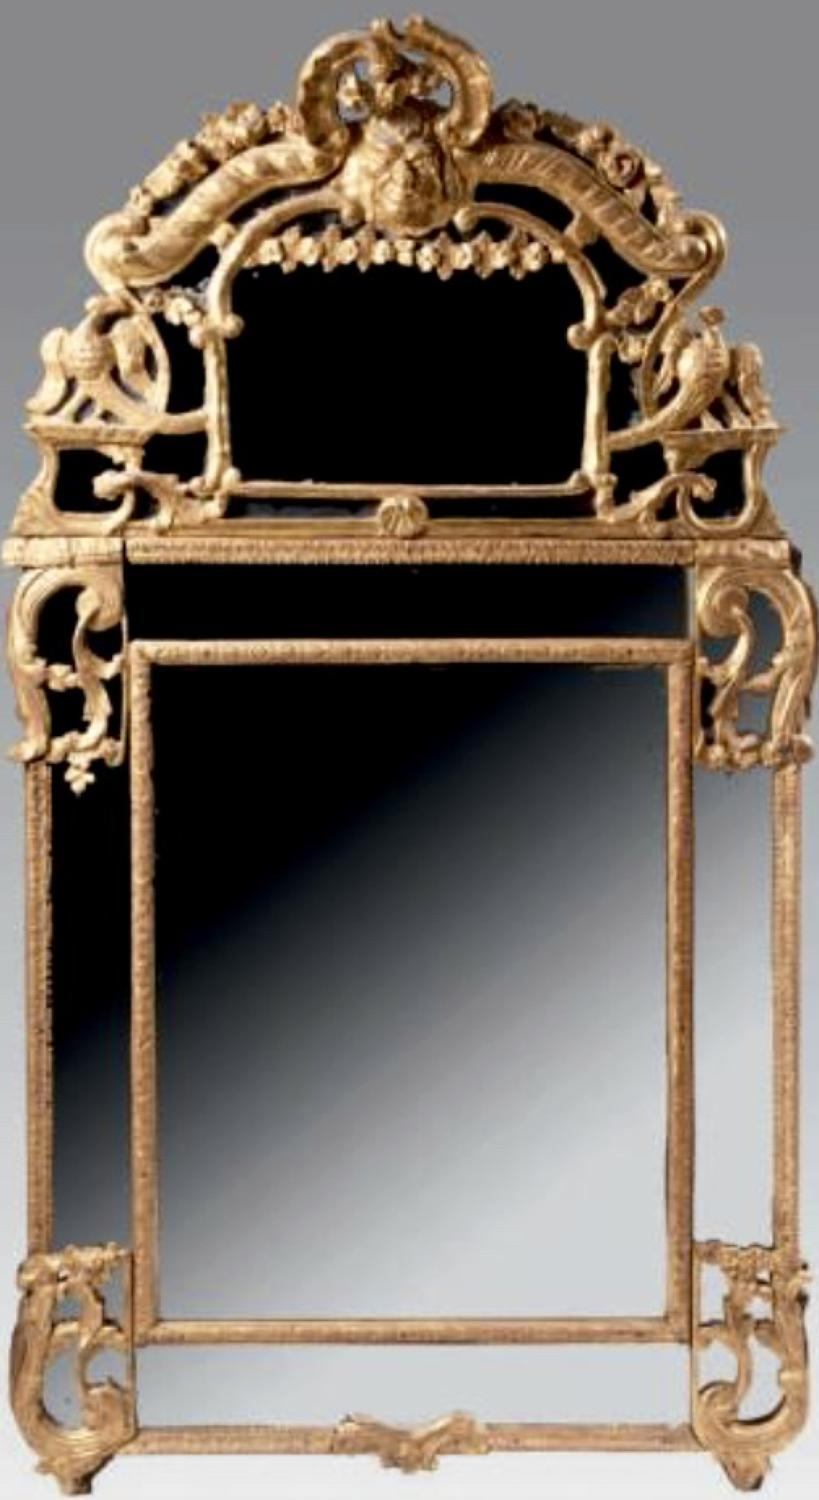 AN EARLY LOUIS XV PERIOD GILT MIRROR